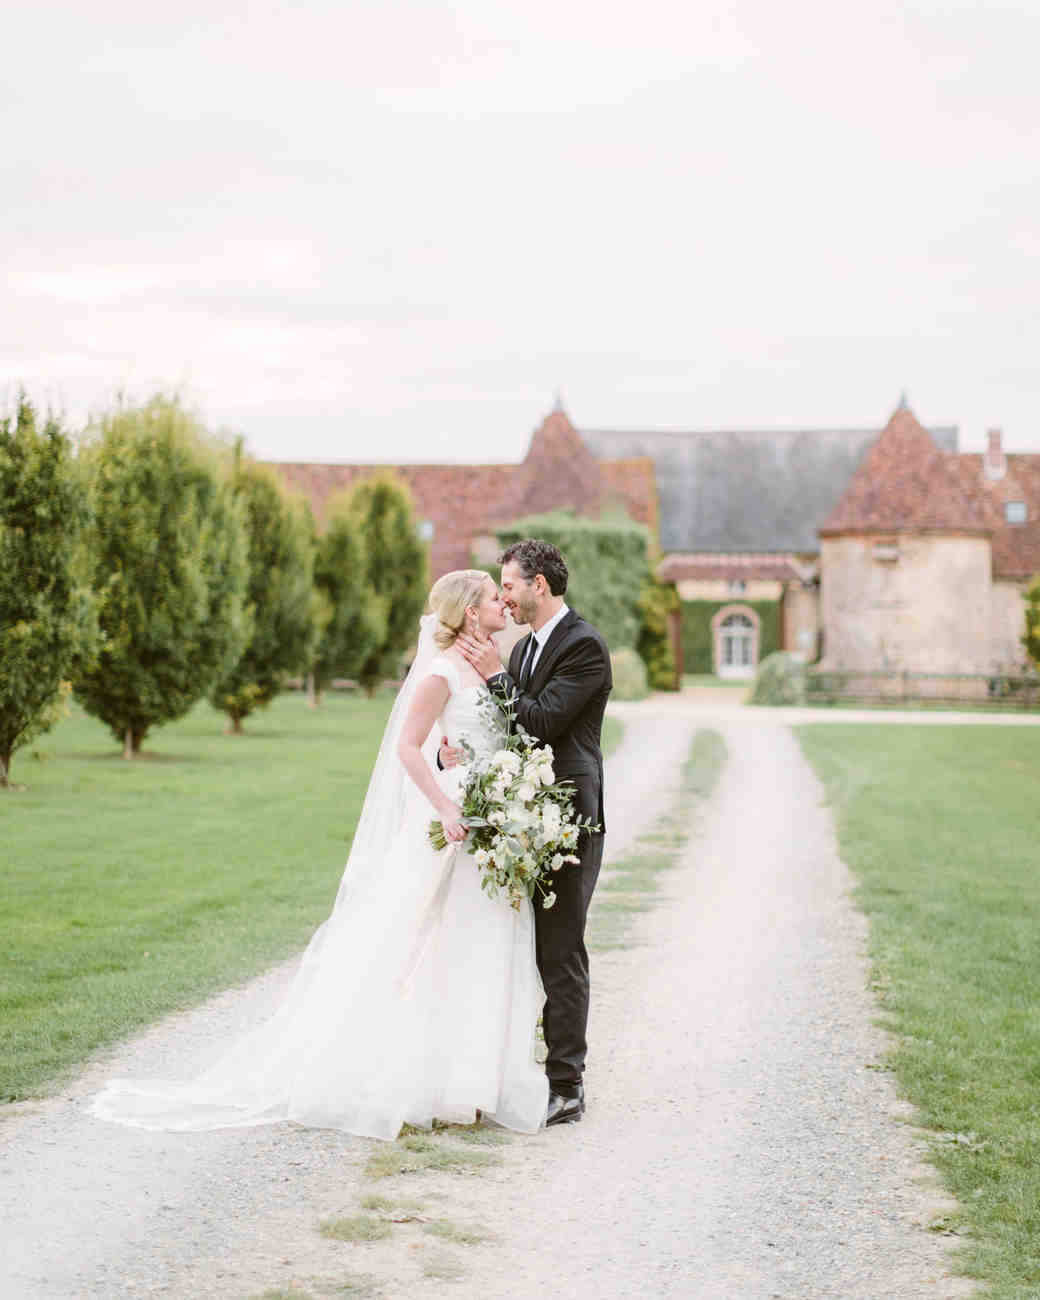 Anne Claire and Chris An Elegant Intimate Wedding